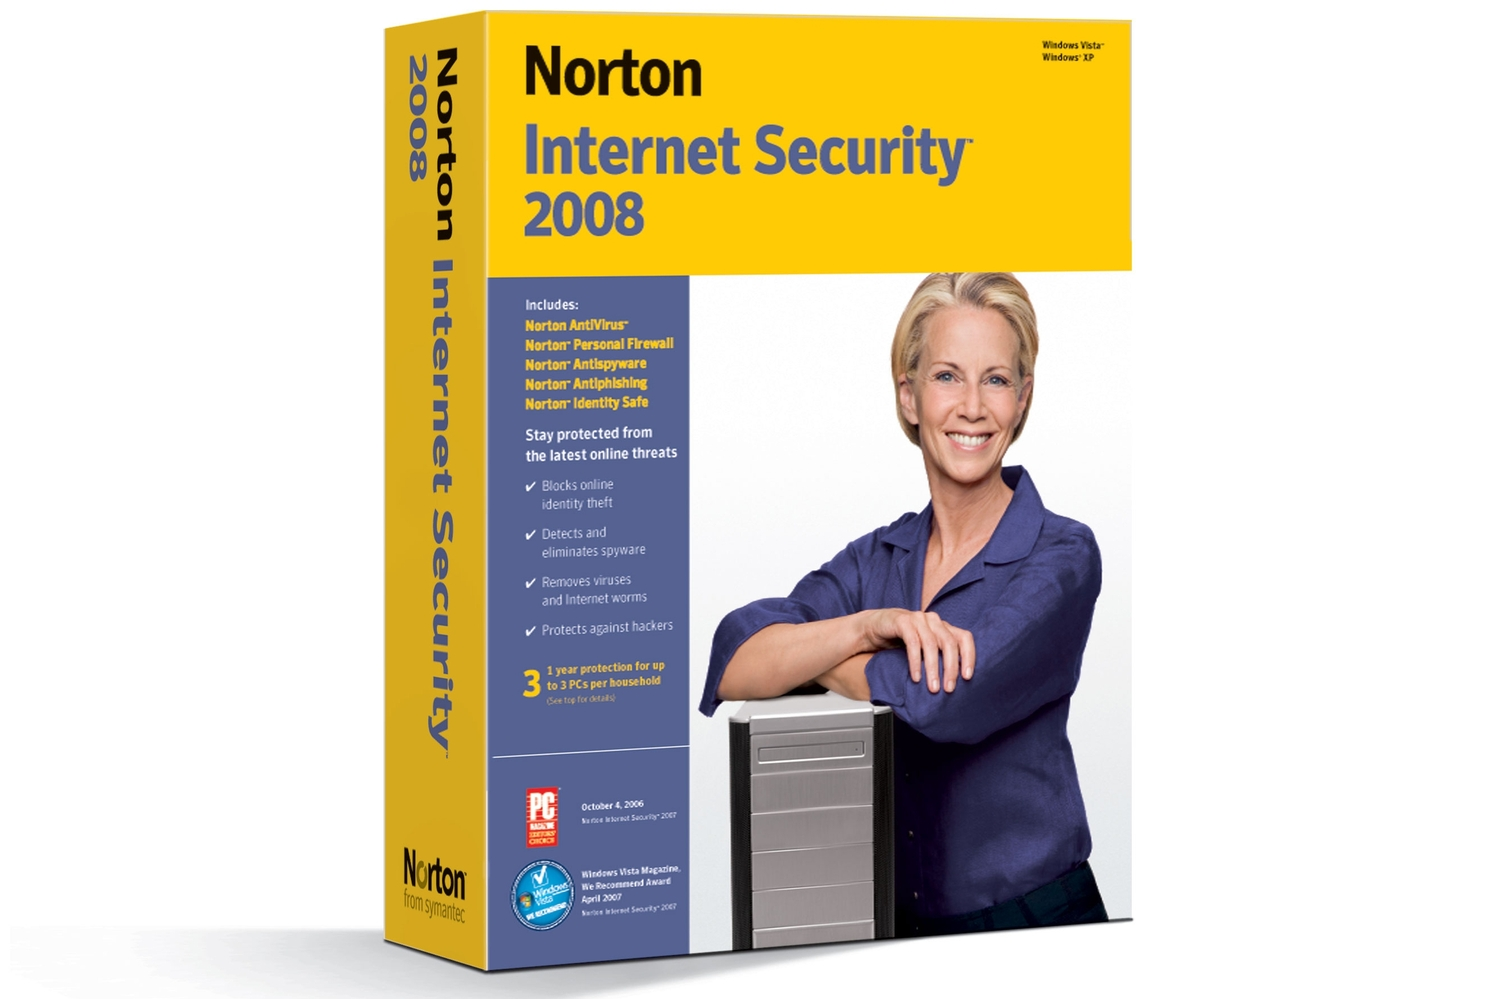 Norton by Symantec Australia website view Totally 18 Norton by Symantec Australia promotions & coupons are collected and the latest one is updated on 8th,Nov Subscribe to our newsletter if no promotions satisty you at the moment.